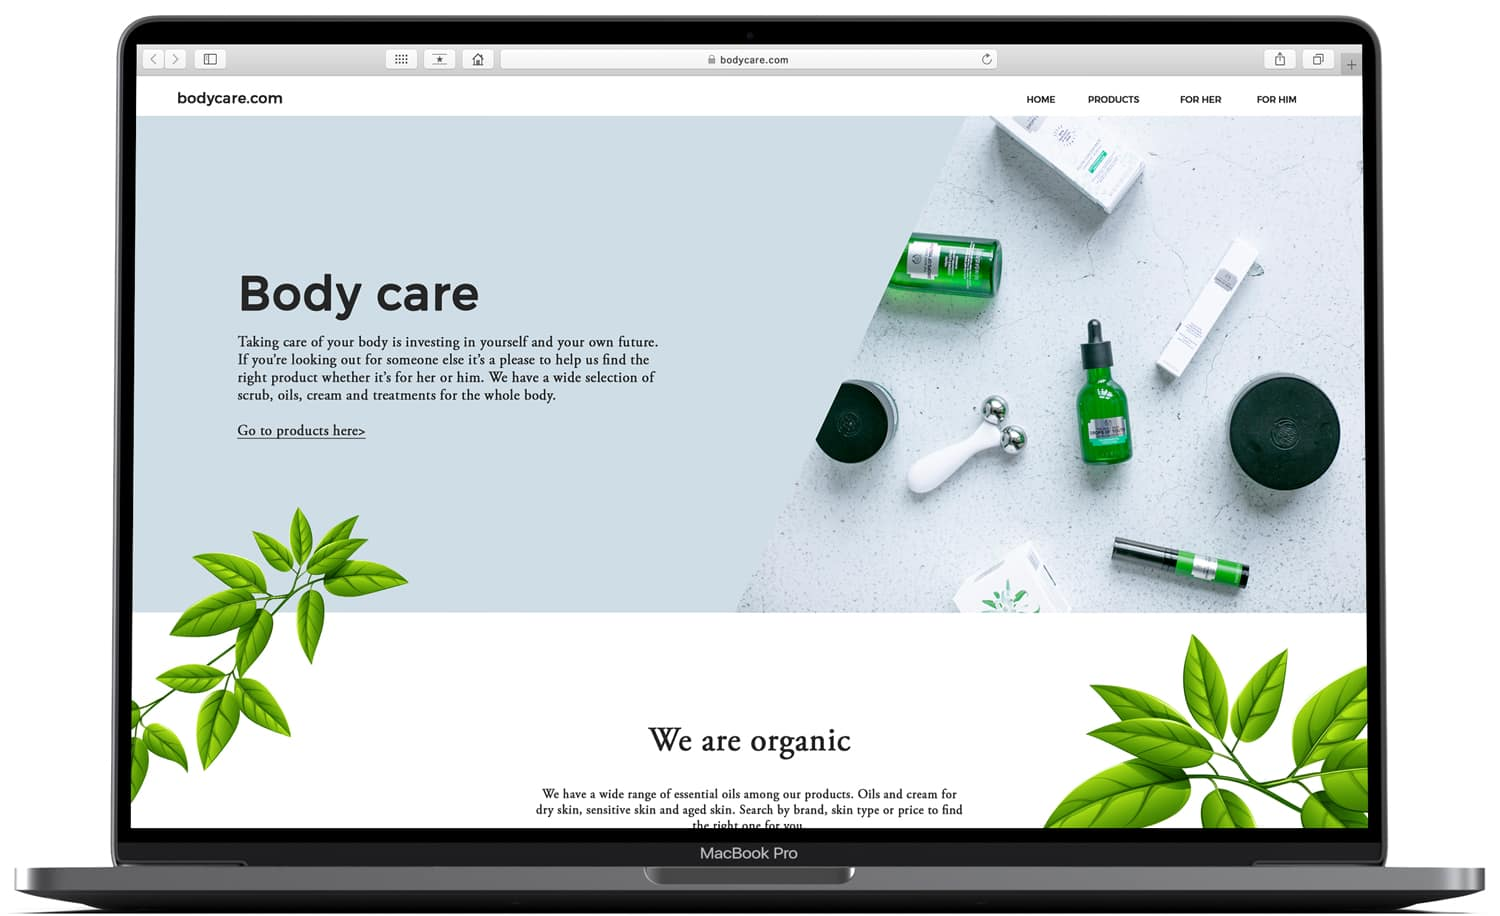 Webshop for body care